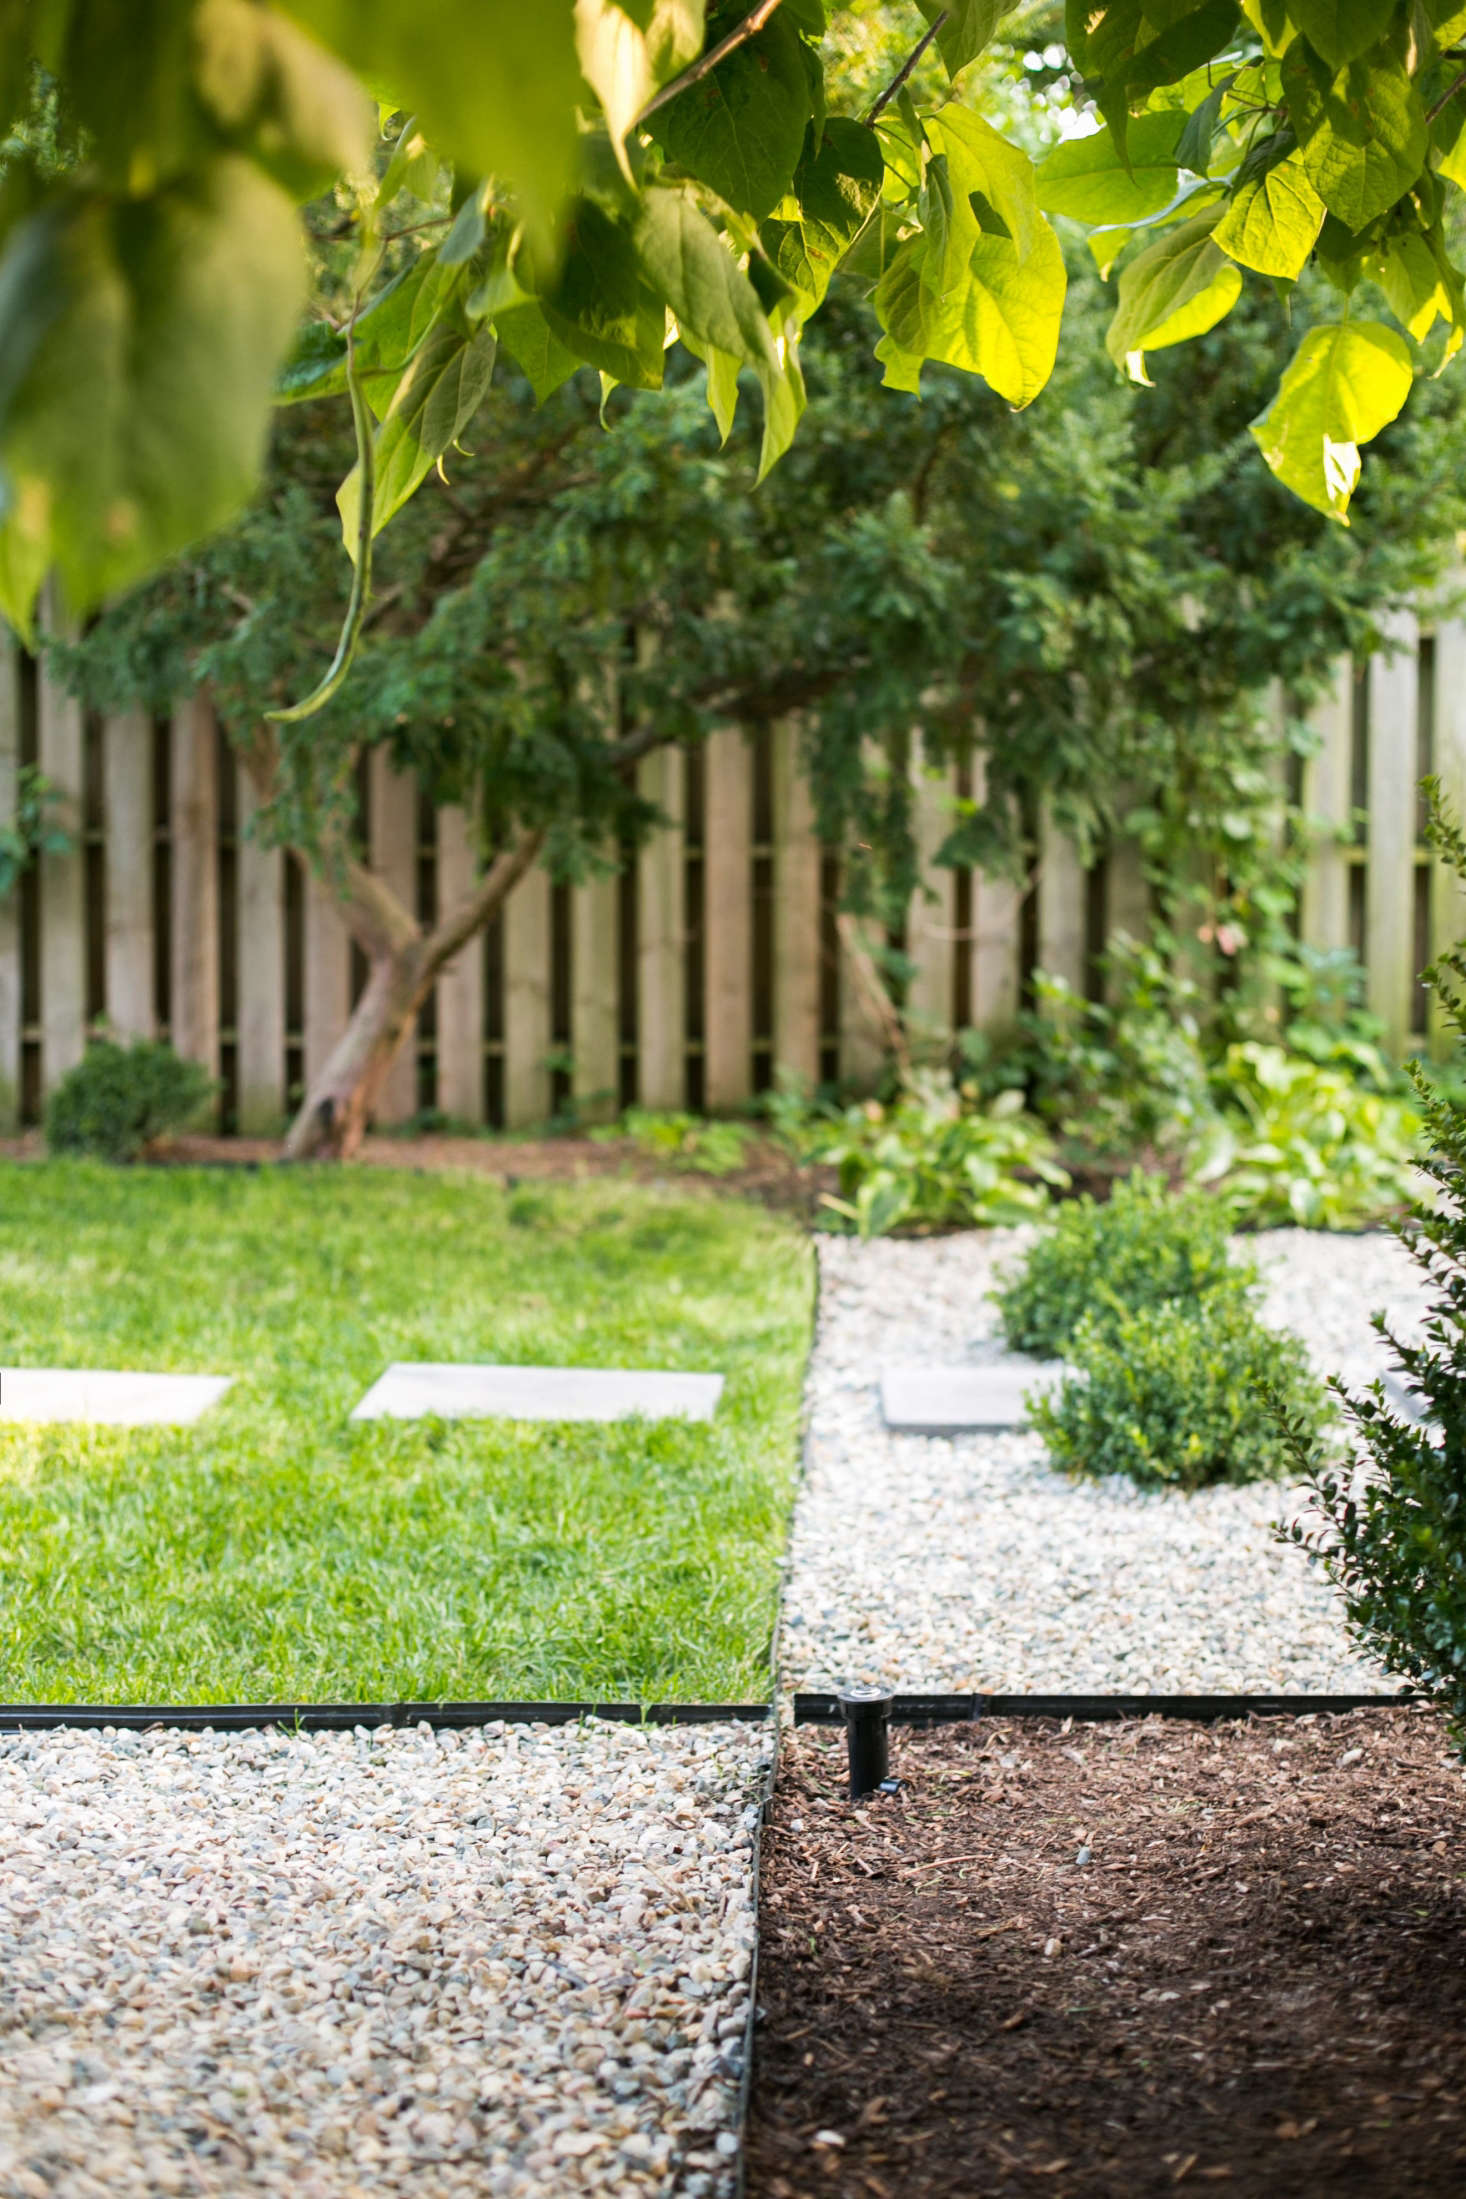 Contractor Packard came up with a landscape design that integrated turf grass (for the dogs to play), gravel (to edge pathways, and mulch (as ground cover beneath shrubs and other plants).